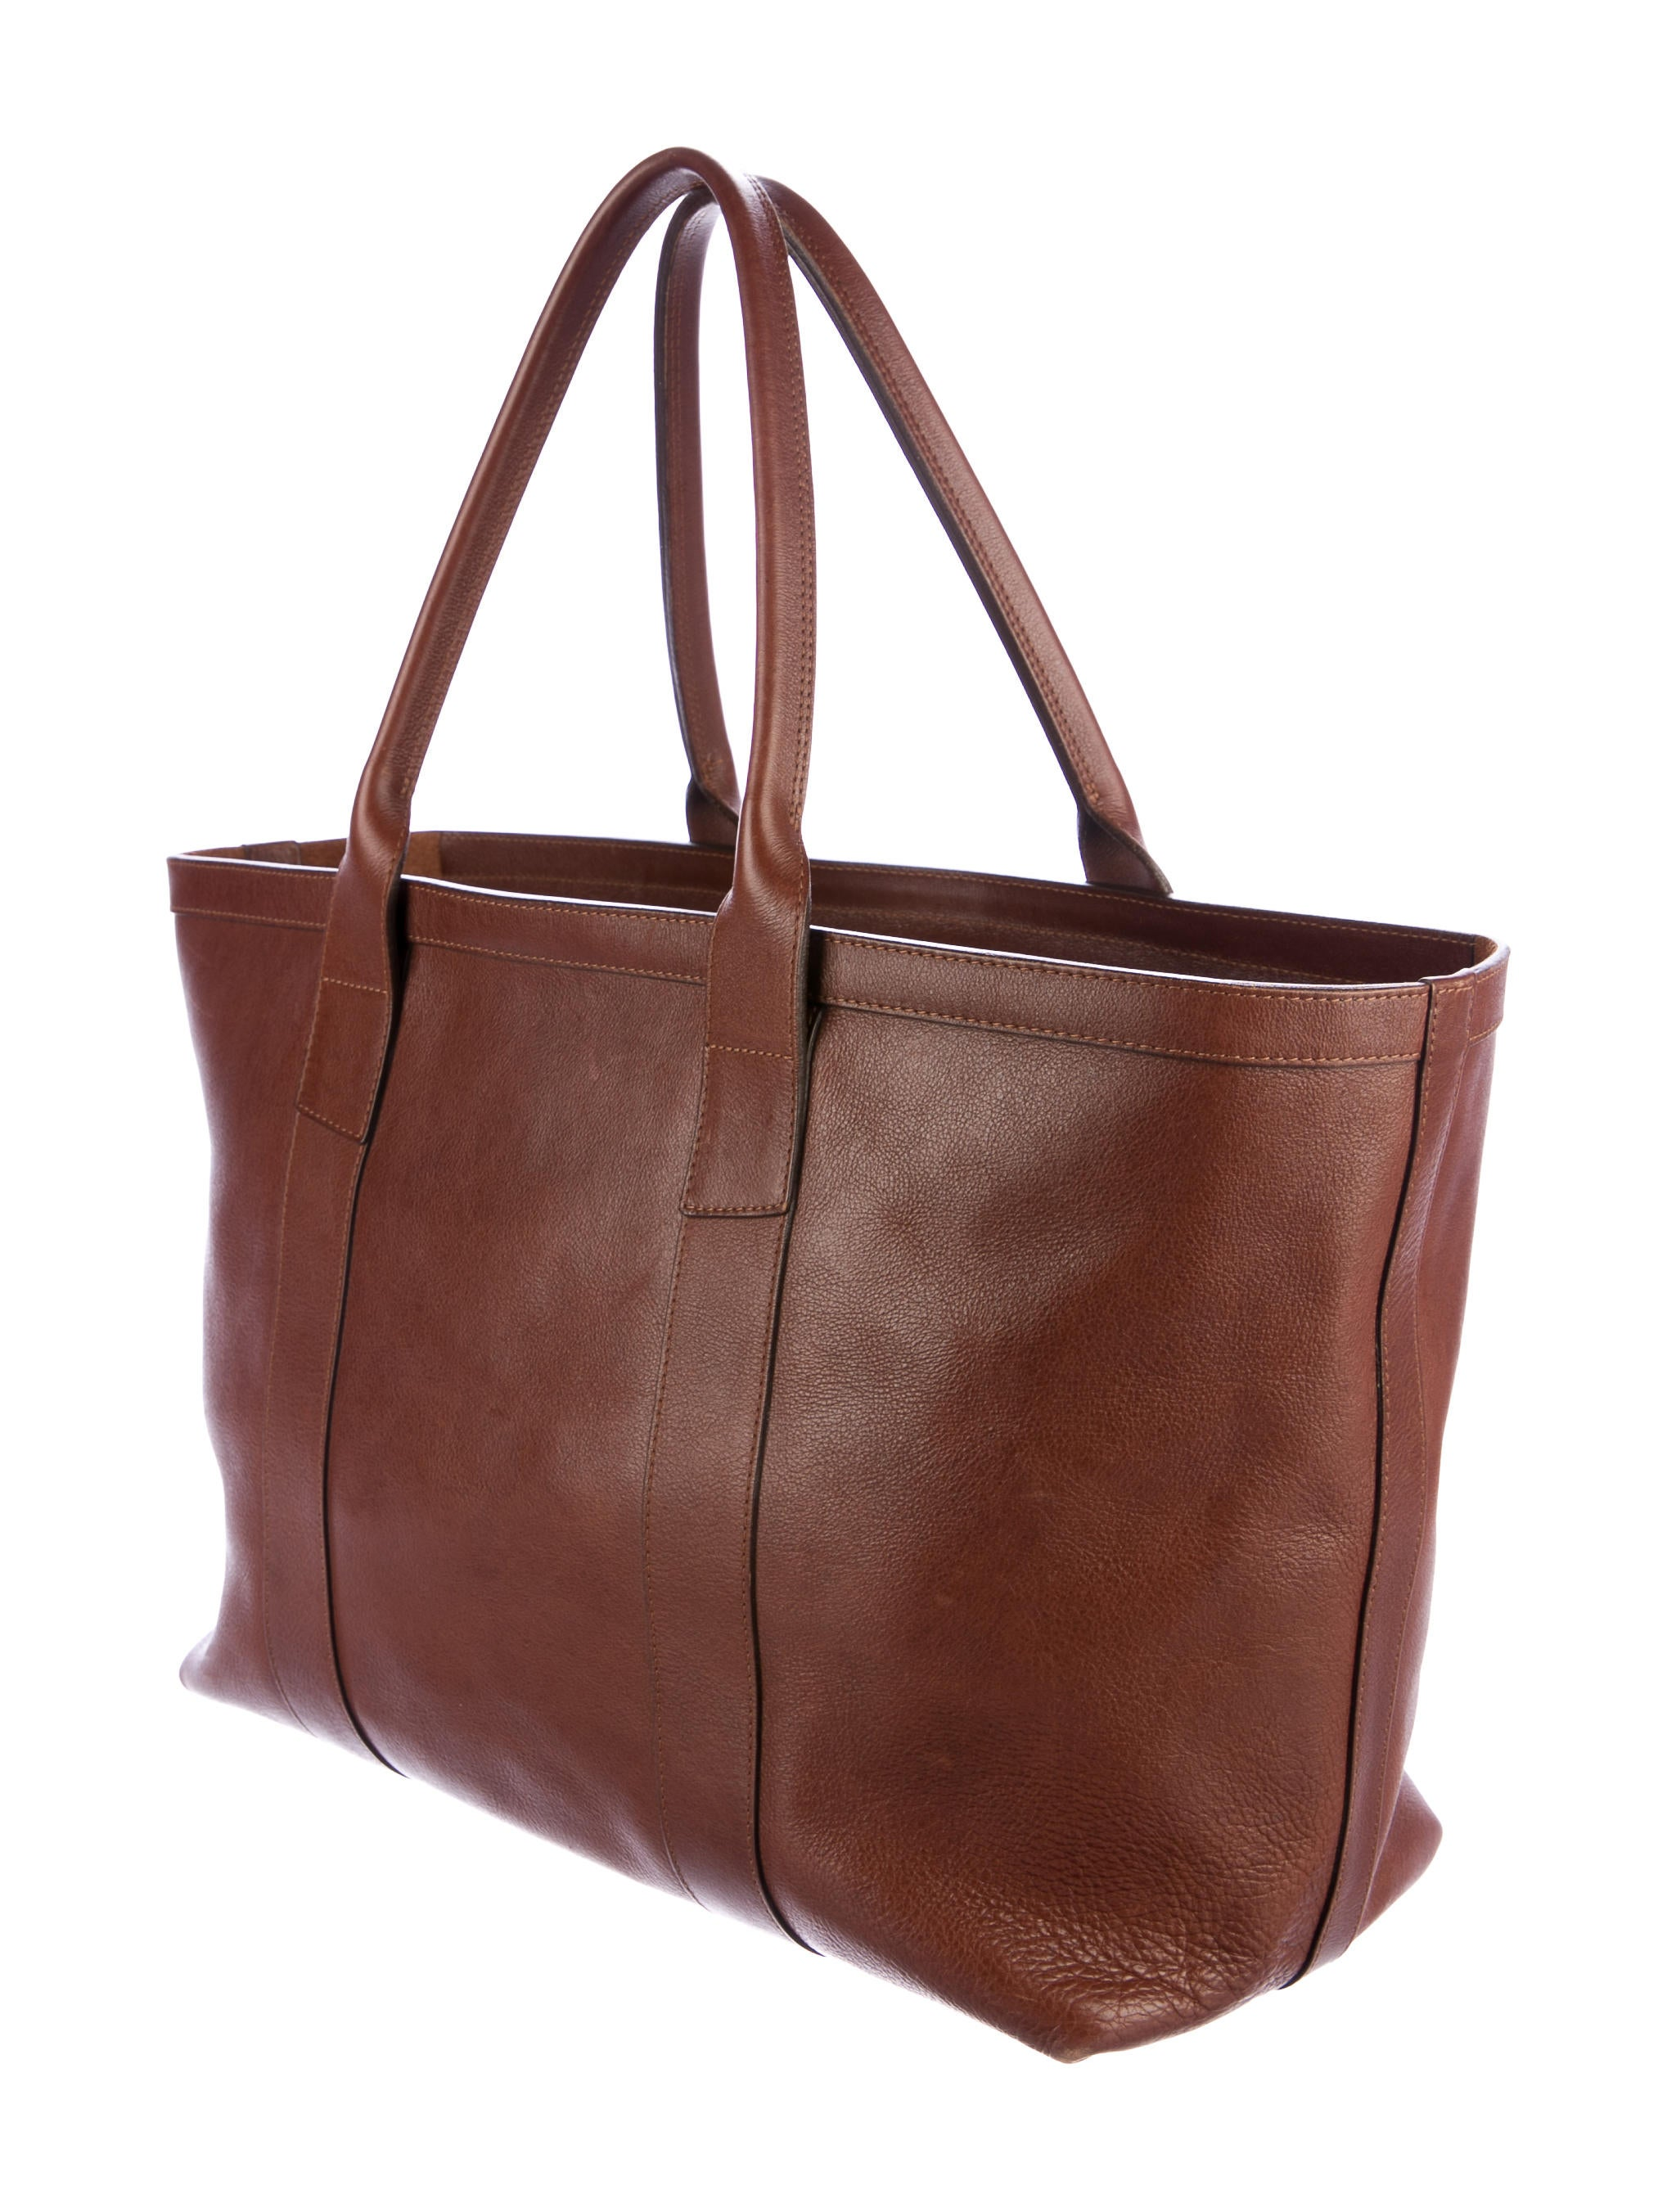 Lotuff Leather Shopper Tote Bag - Bags - LLF20007 | The ...